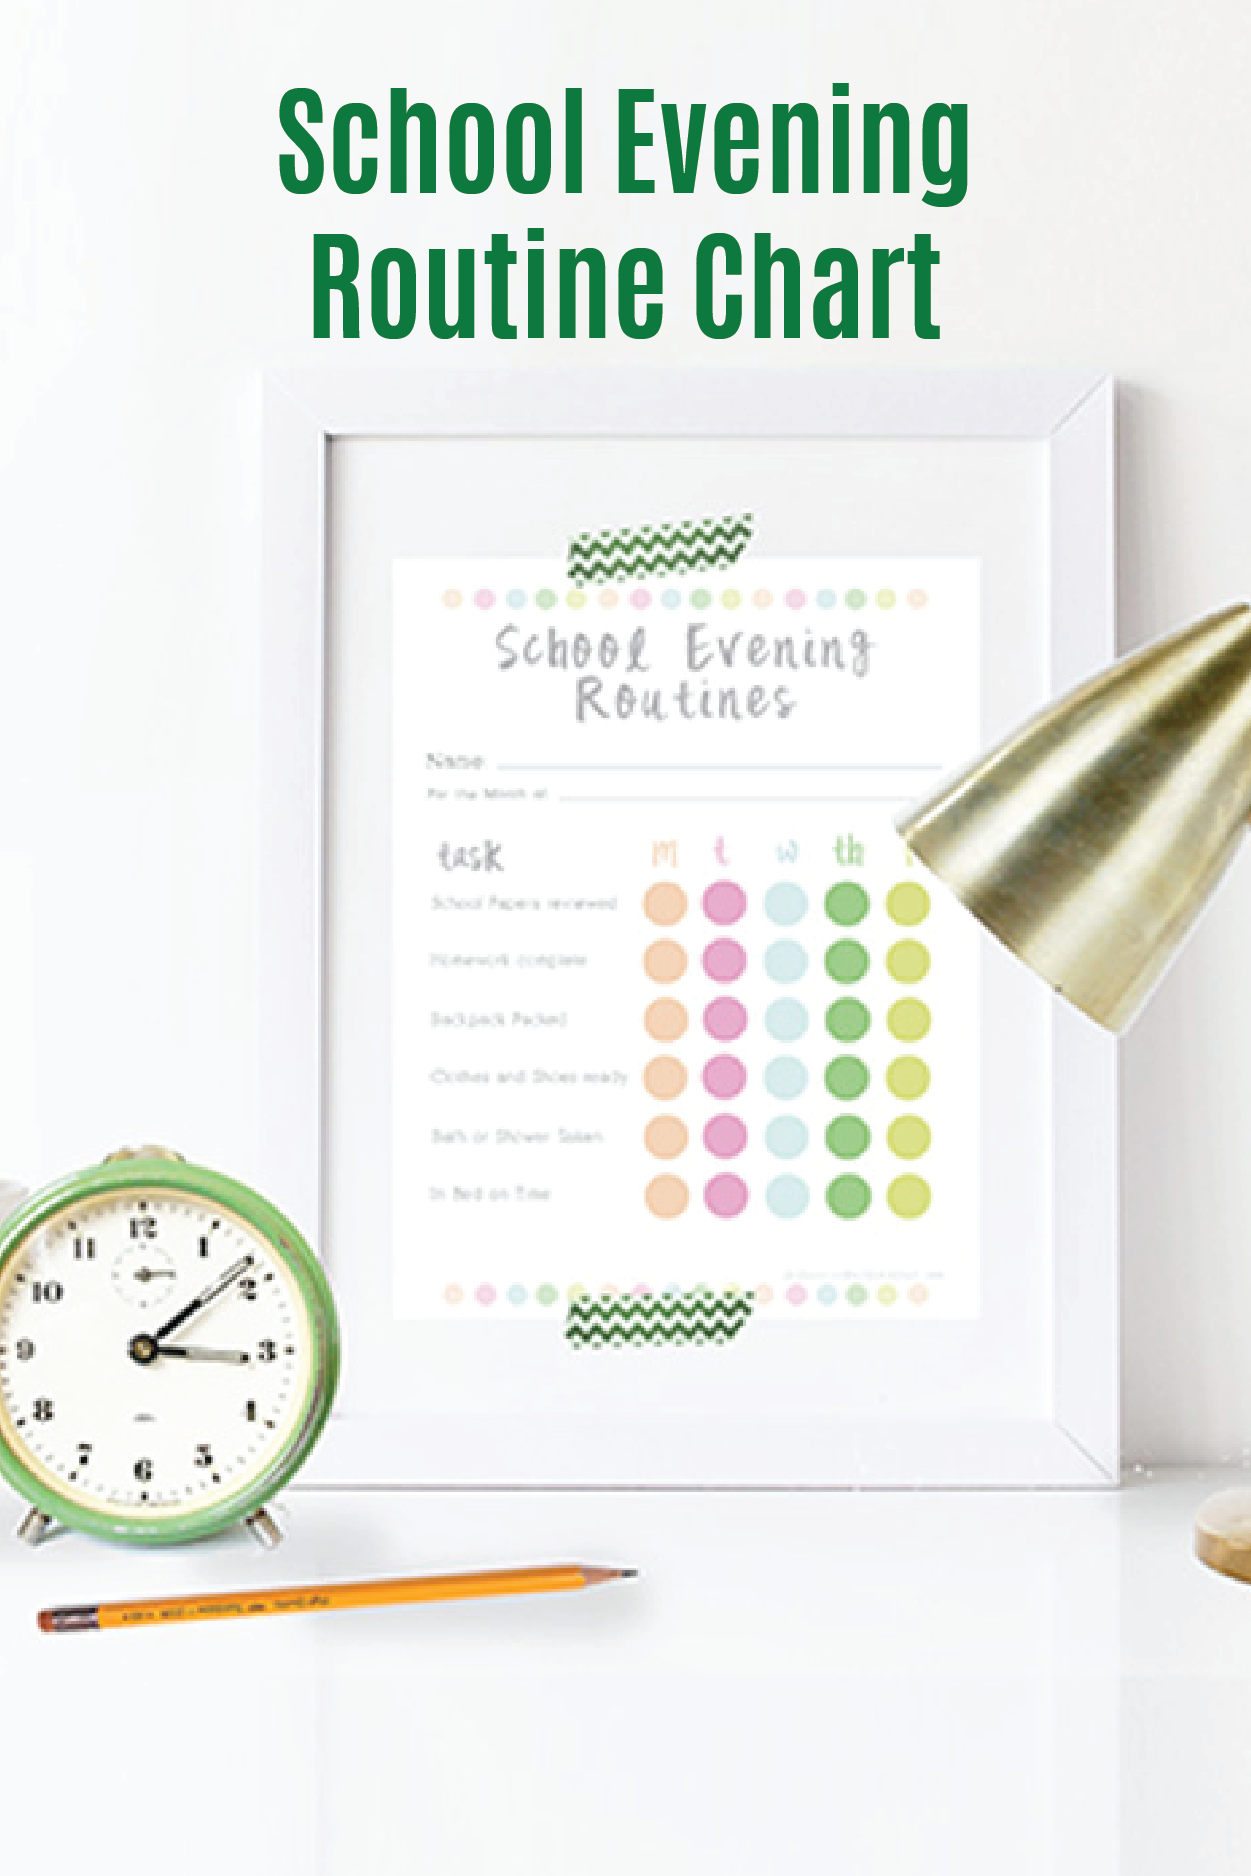 School Evening Routine Chart